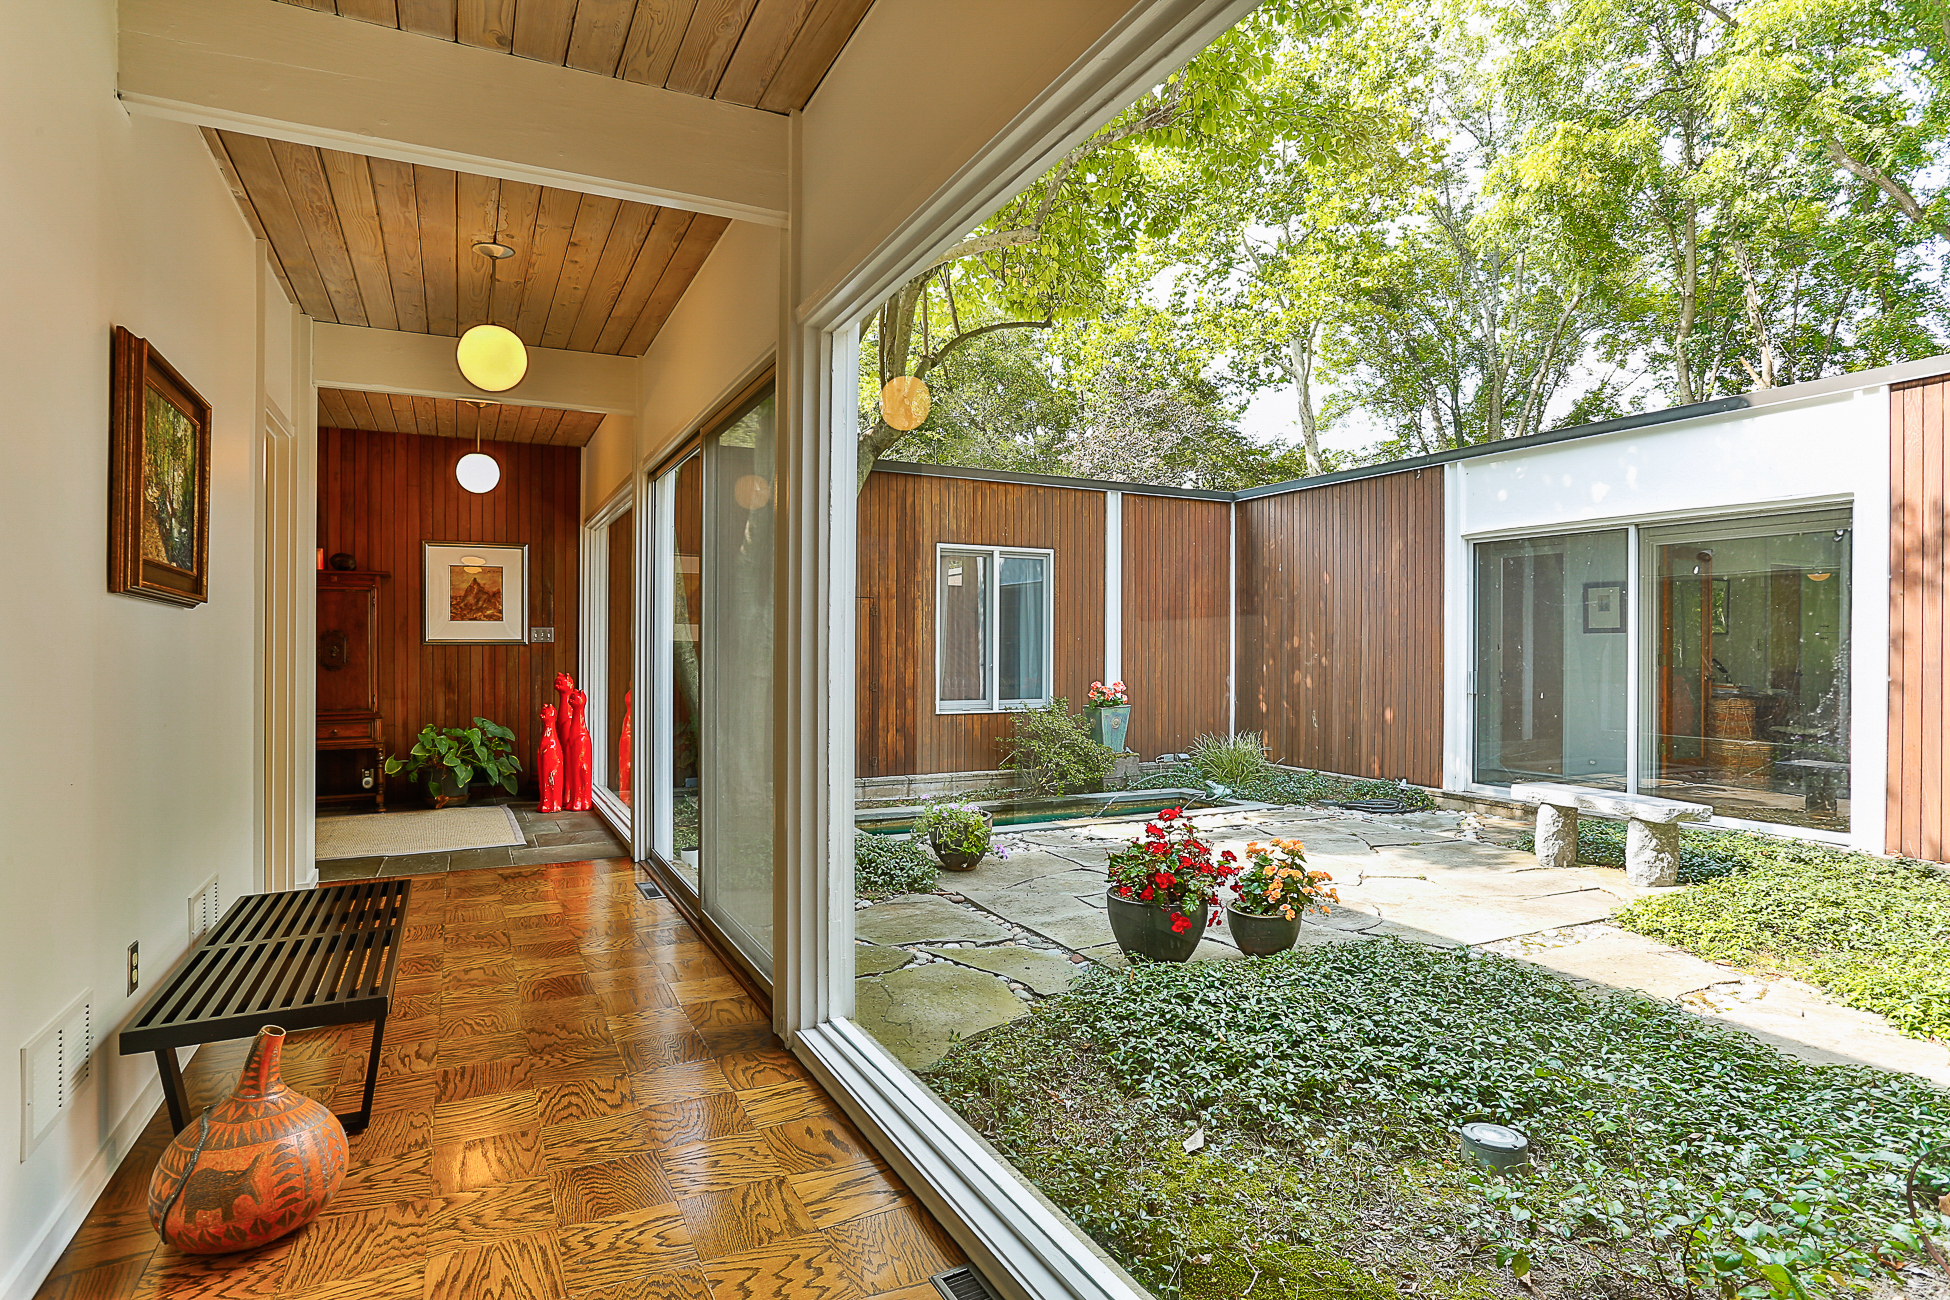 단독 가정 주택 용 매매 에 Stunning Mid-Century Modern with Brook Views 115 Brookstone Drive Princeton, 뉴저지, 08540 미국